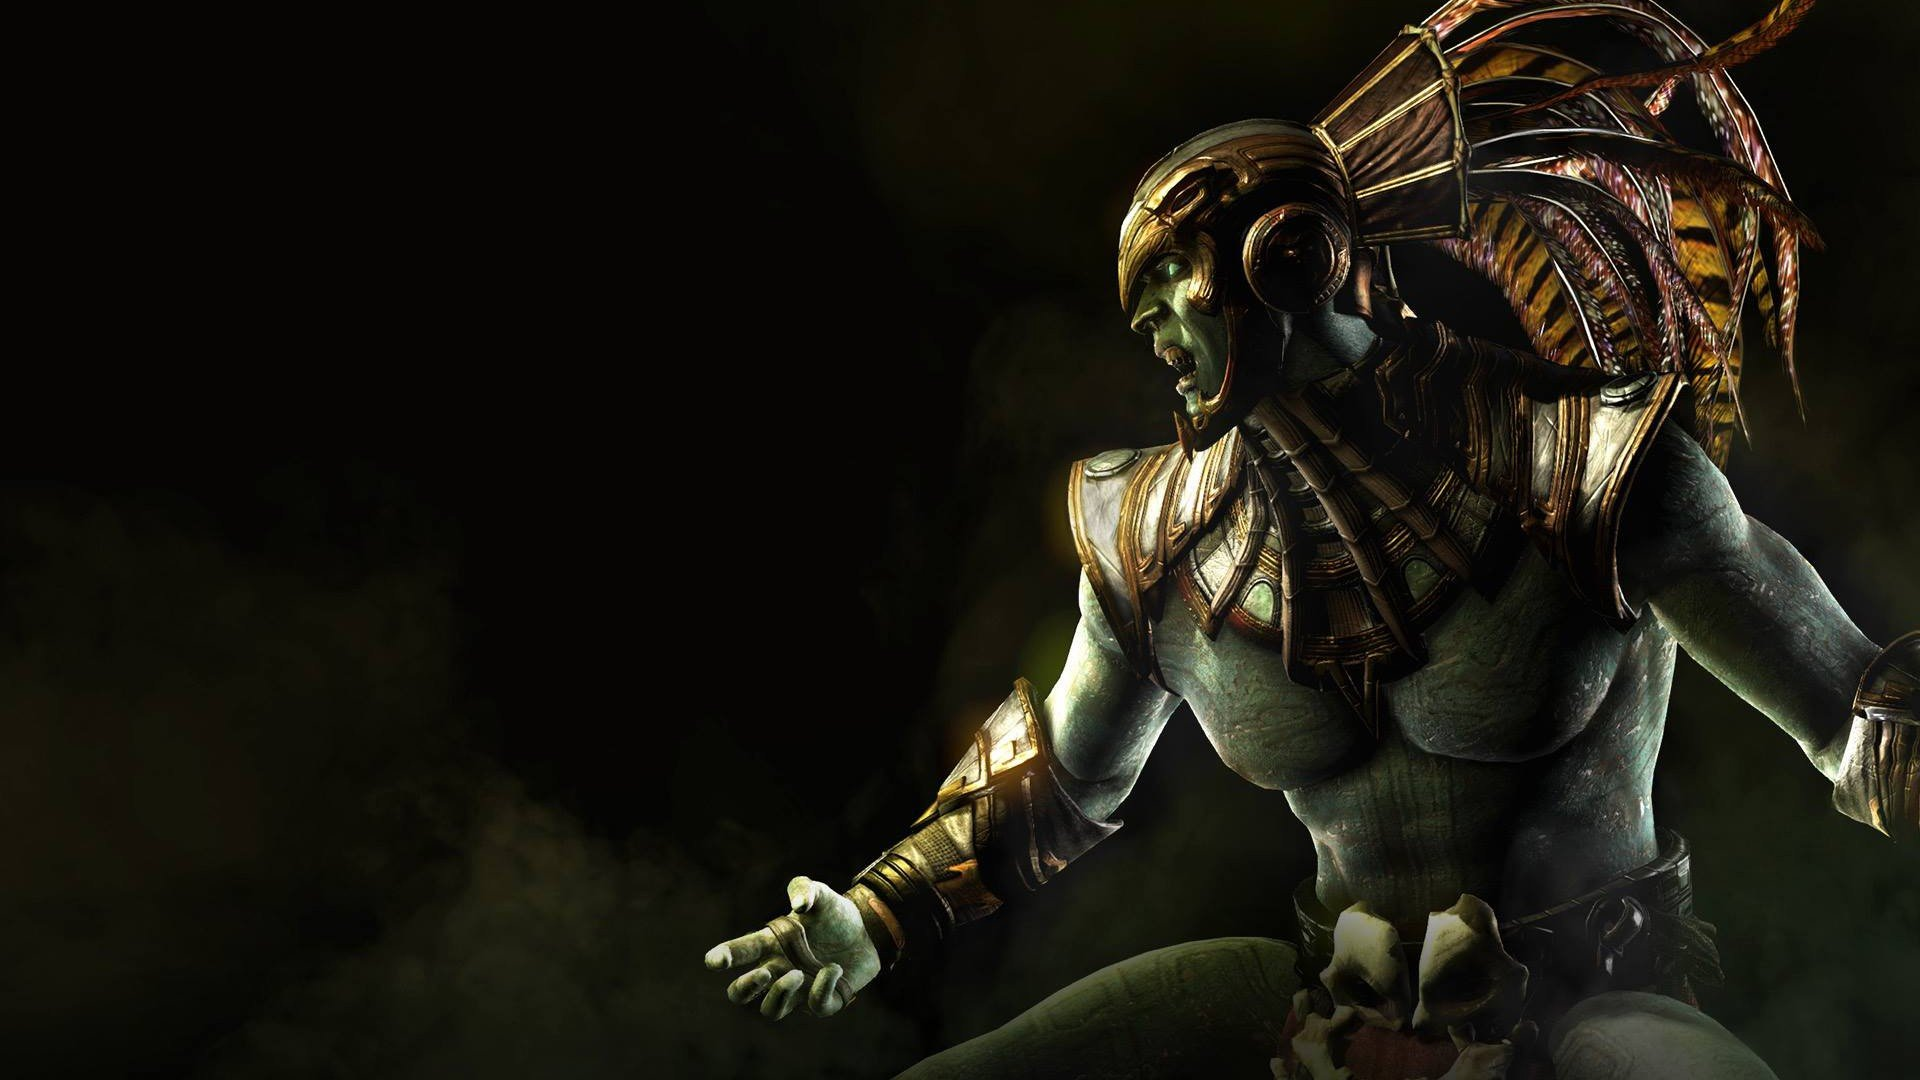 mortal kombat x wallpaper full hd 1080p 436688